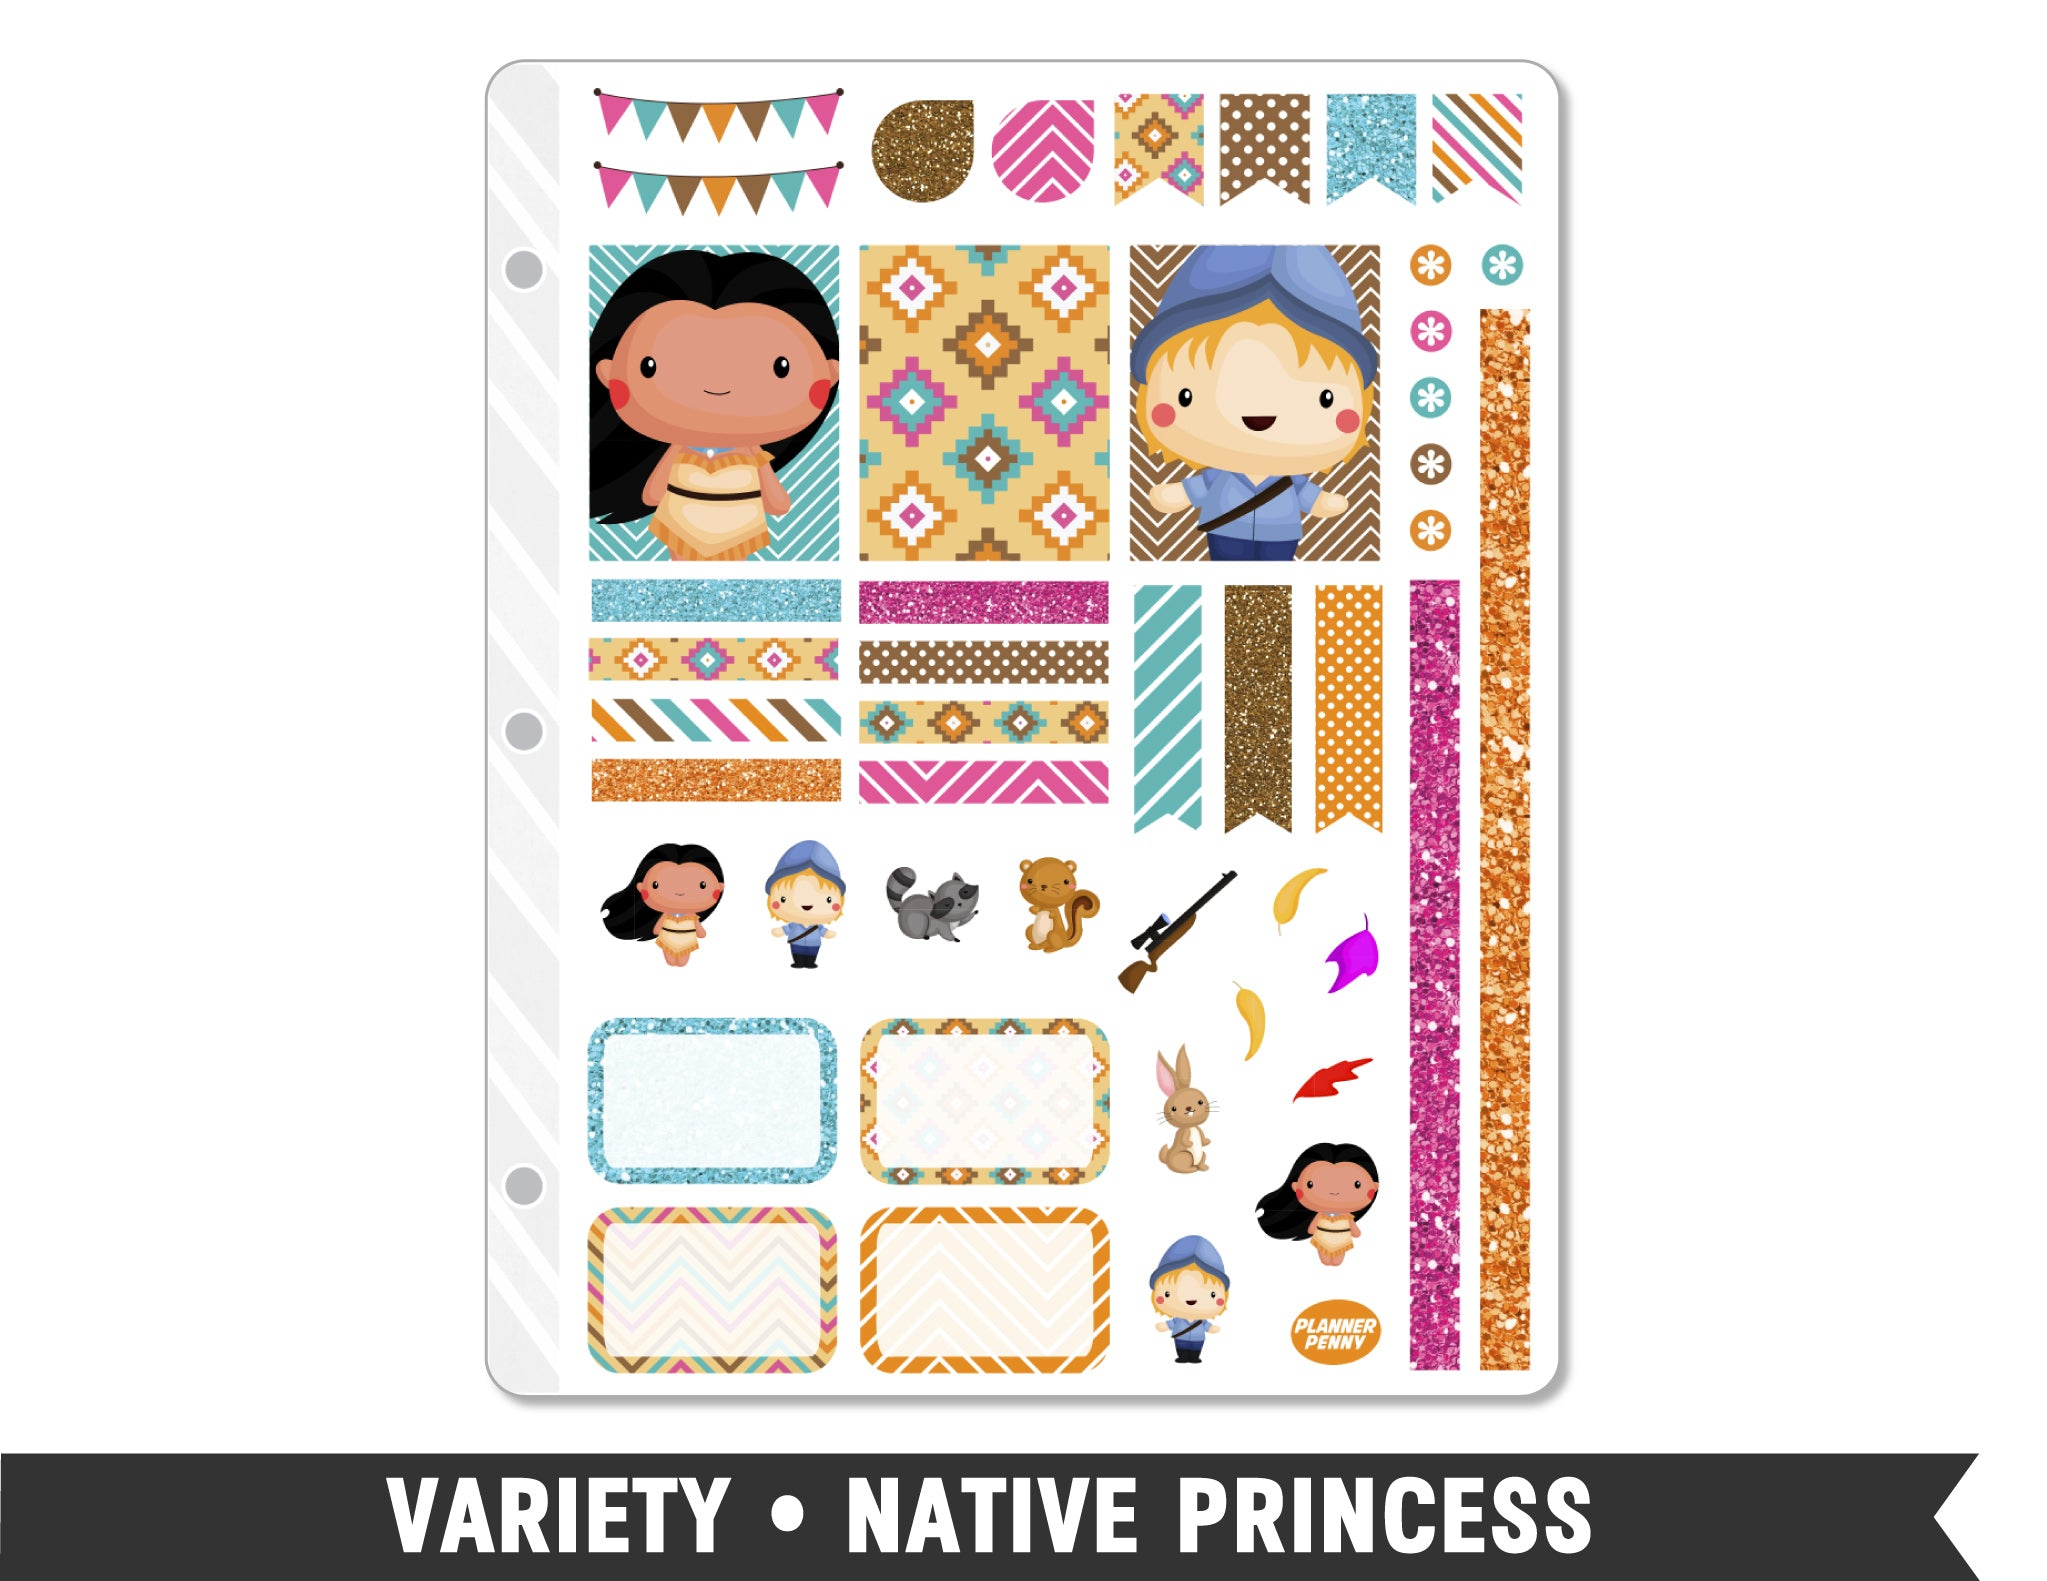 Variety • Native Princess Weekly Spread Planner Stickers - Planner Penny